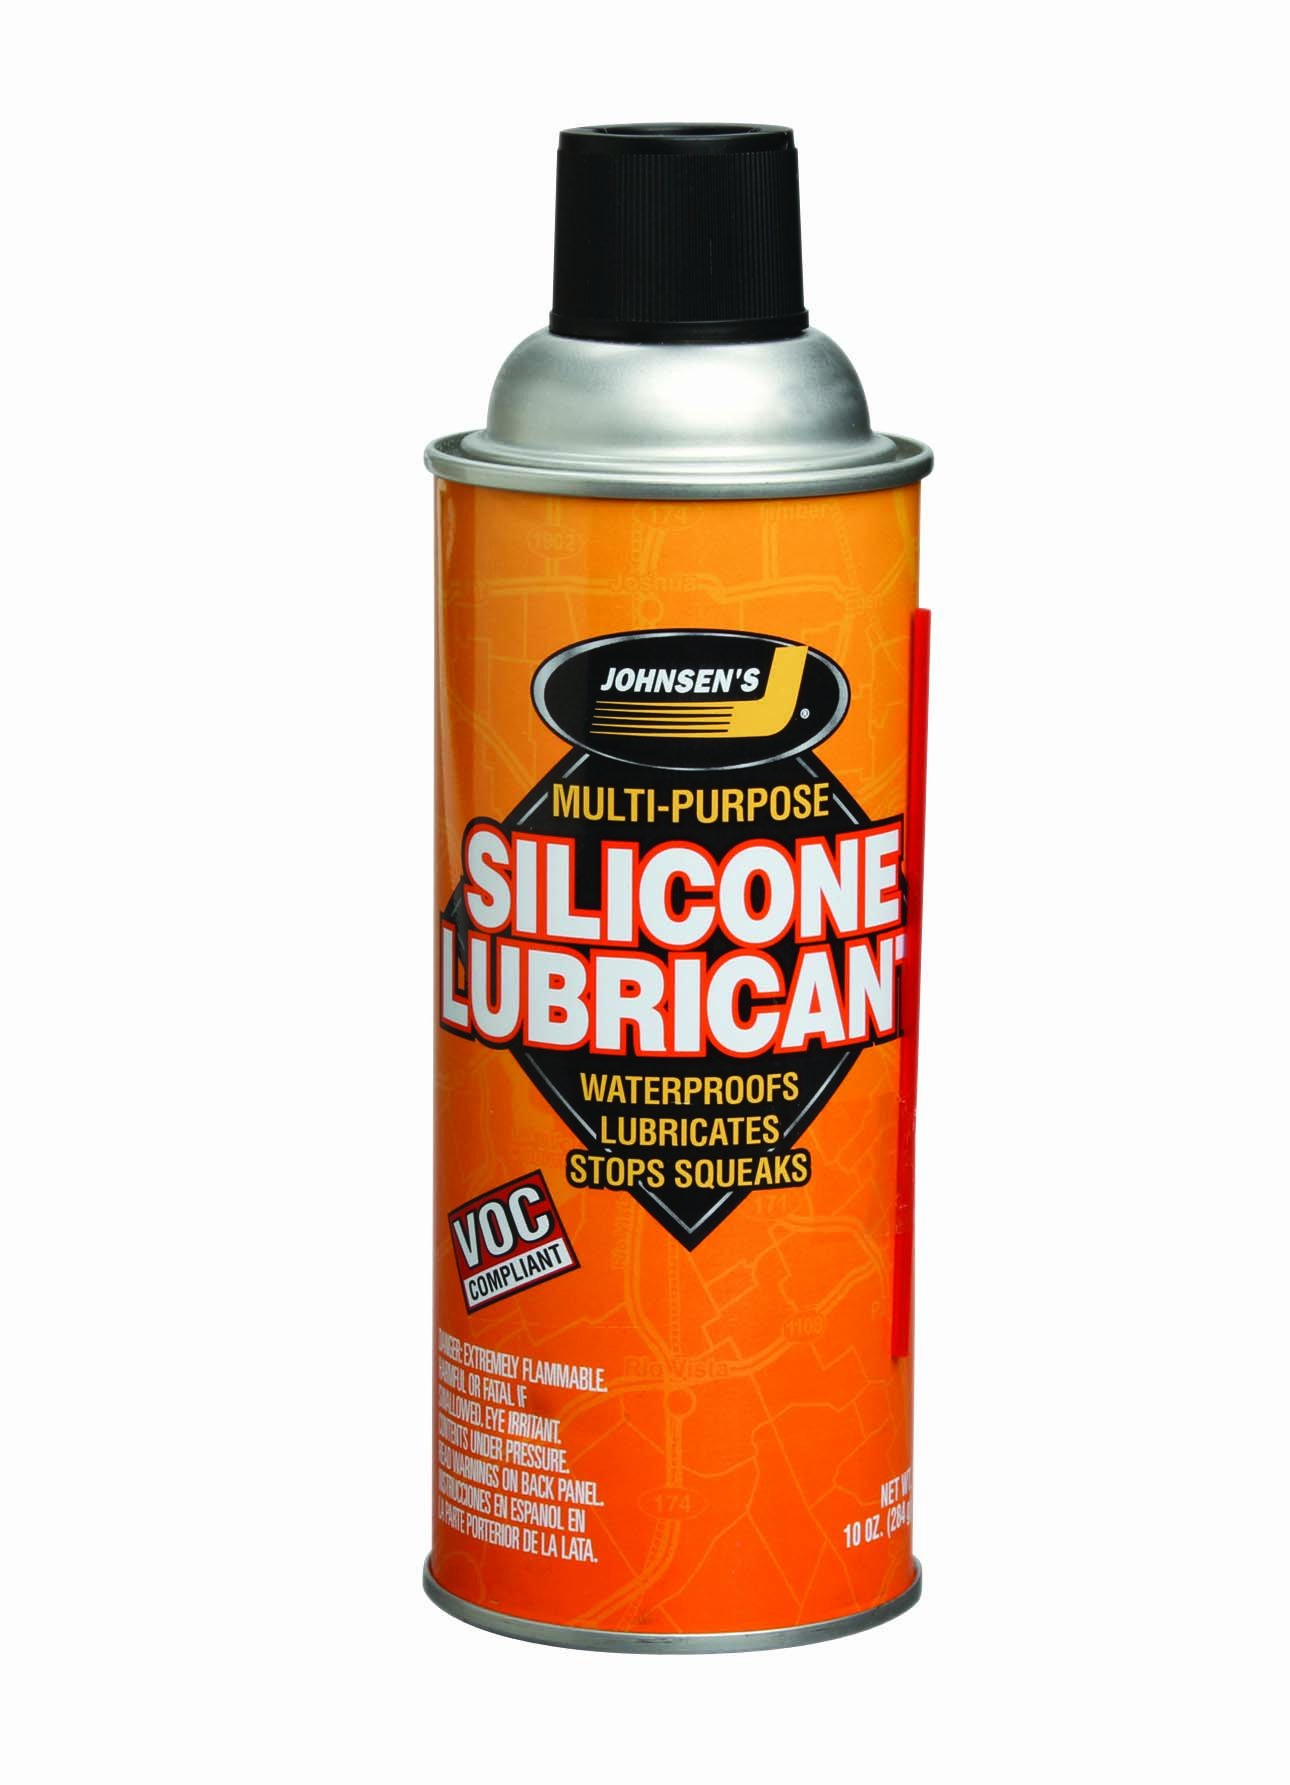 Johnsen's 4603-12PK Silicone Lubricant - 10 oz., (Pack of 12)